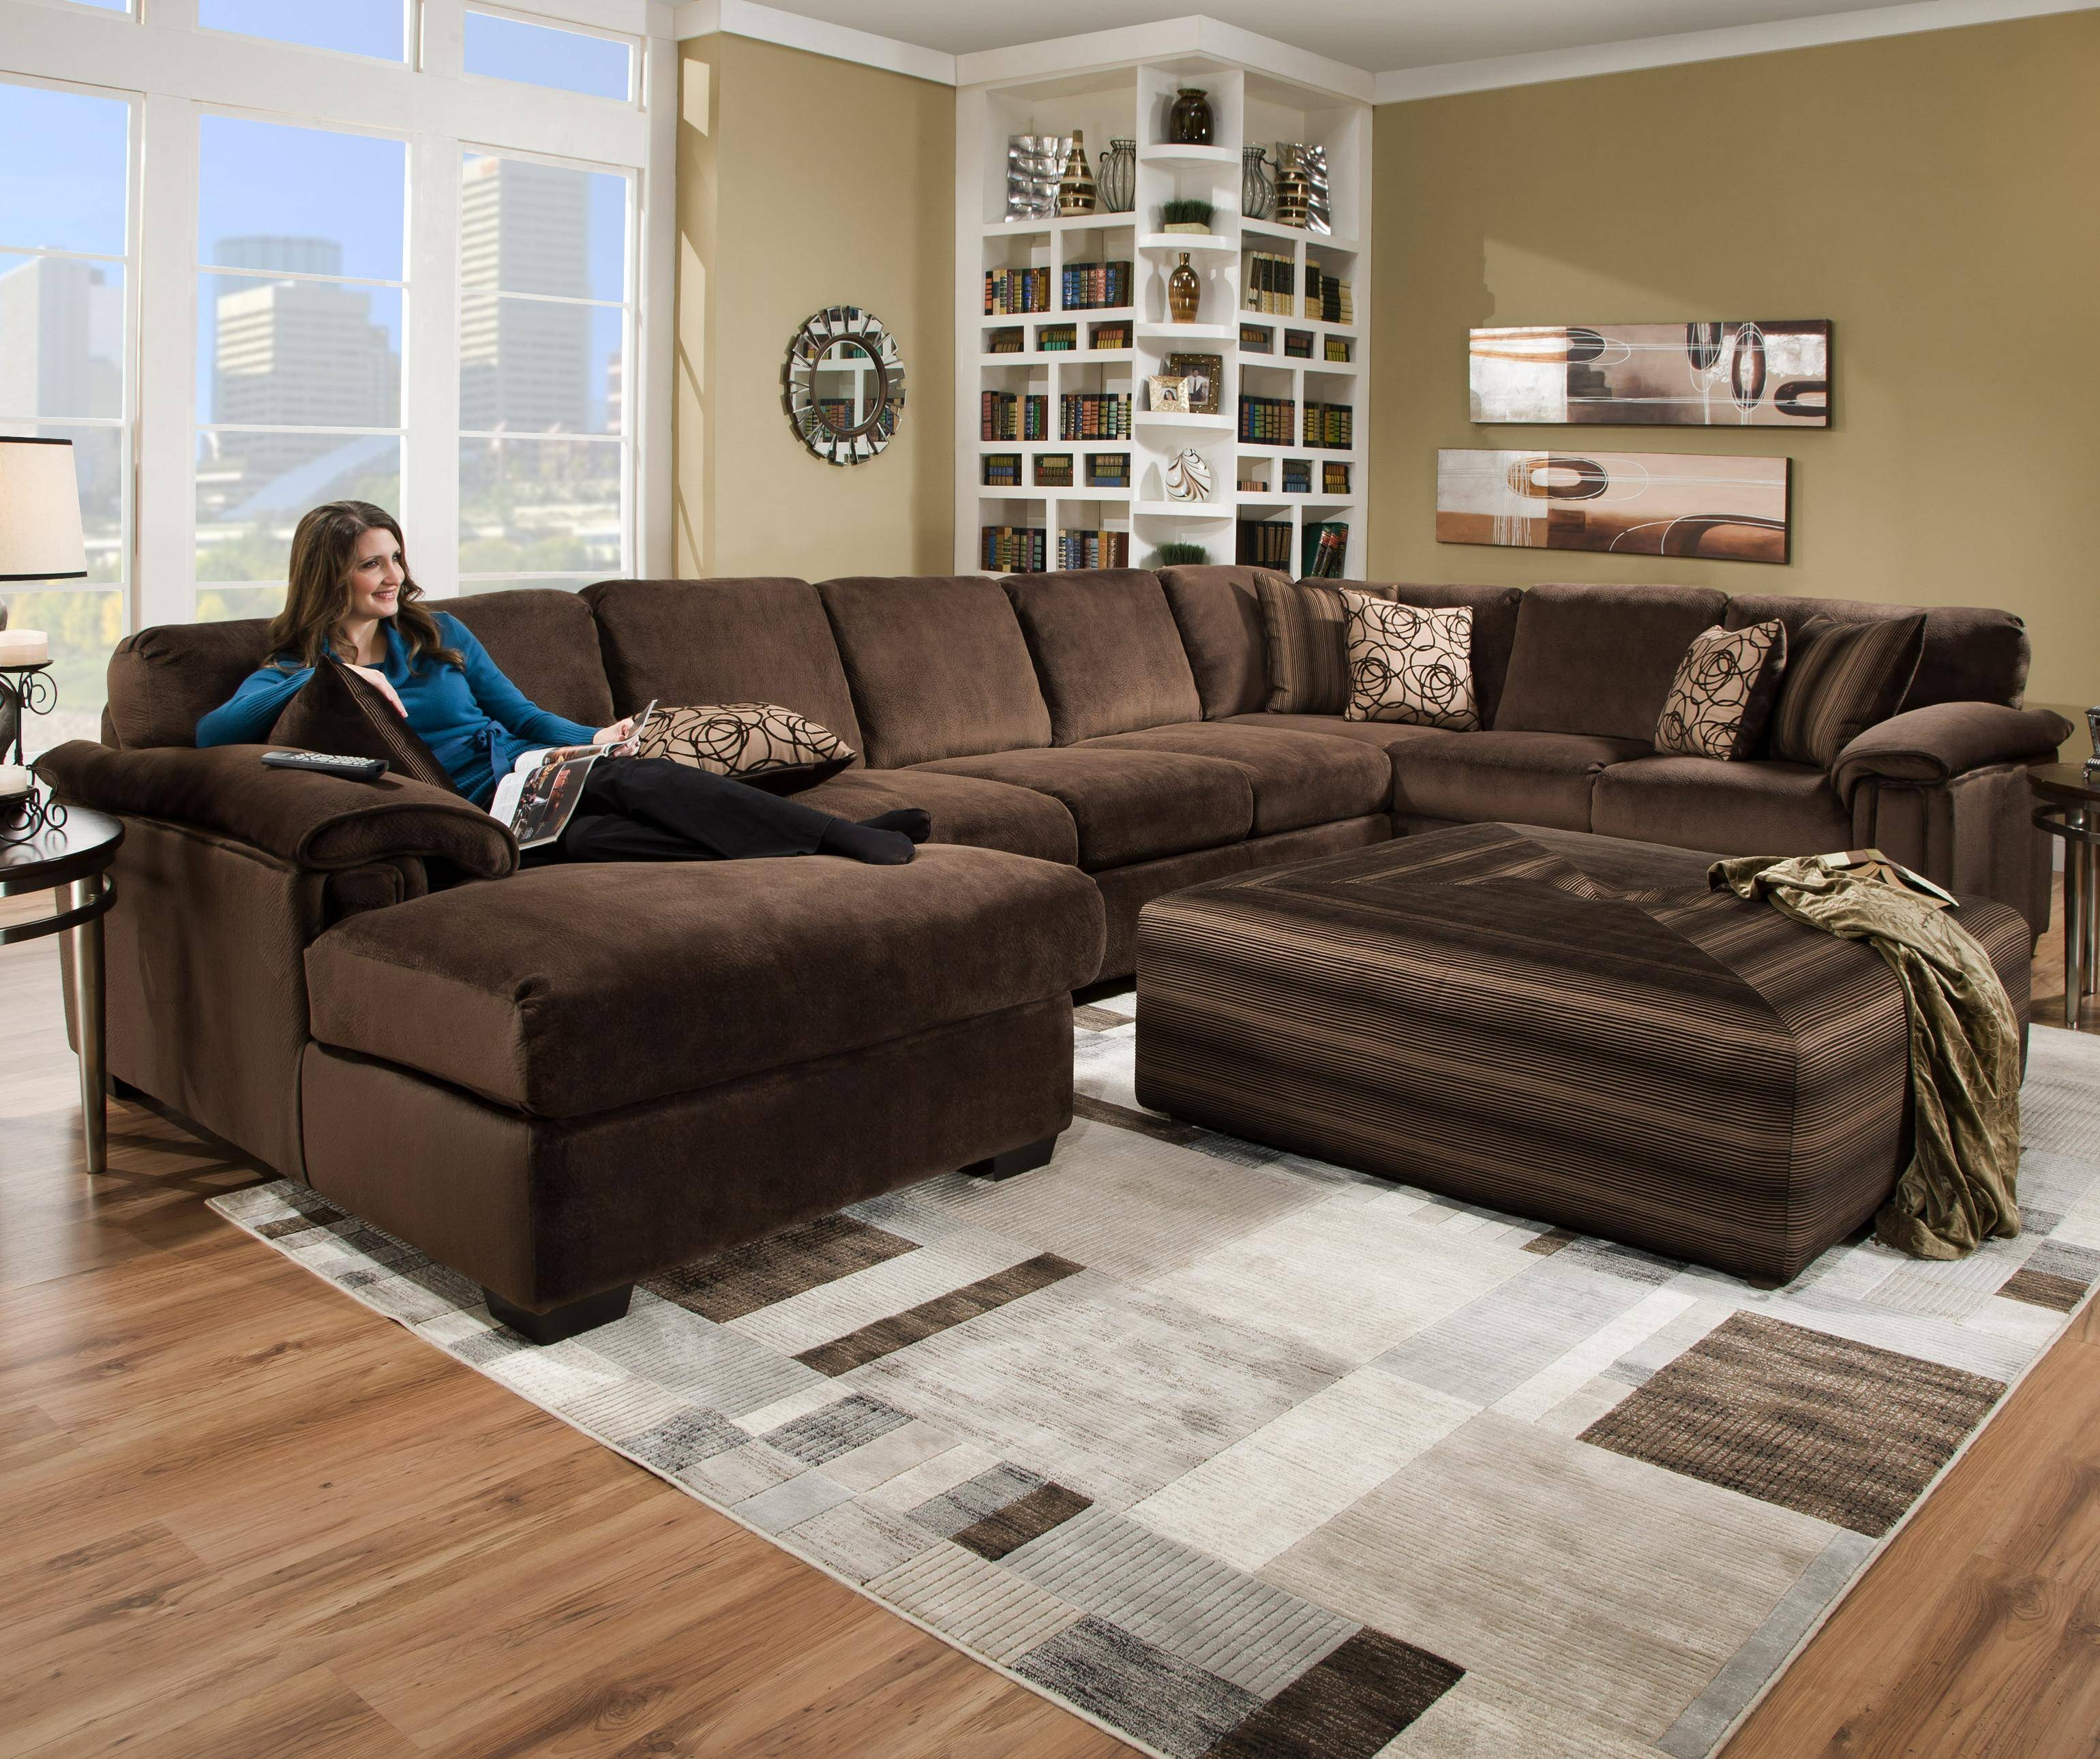 Corinthian 6500 Sect Six Person Sectional Sofa For Contemporary with Corinthian Sectional Sofas (Image 6 of 30)